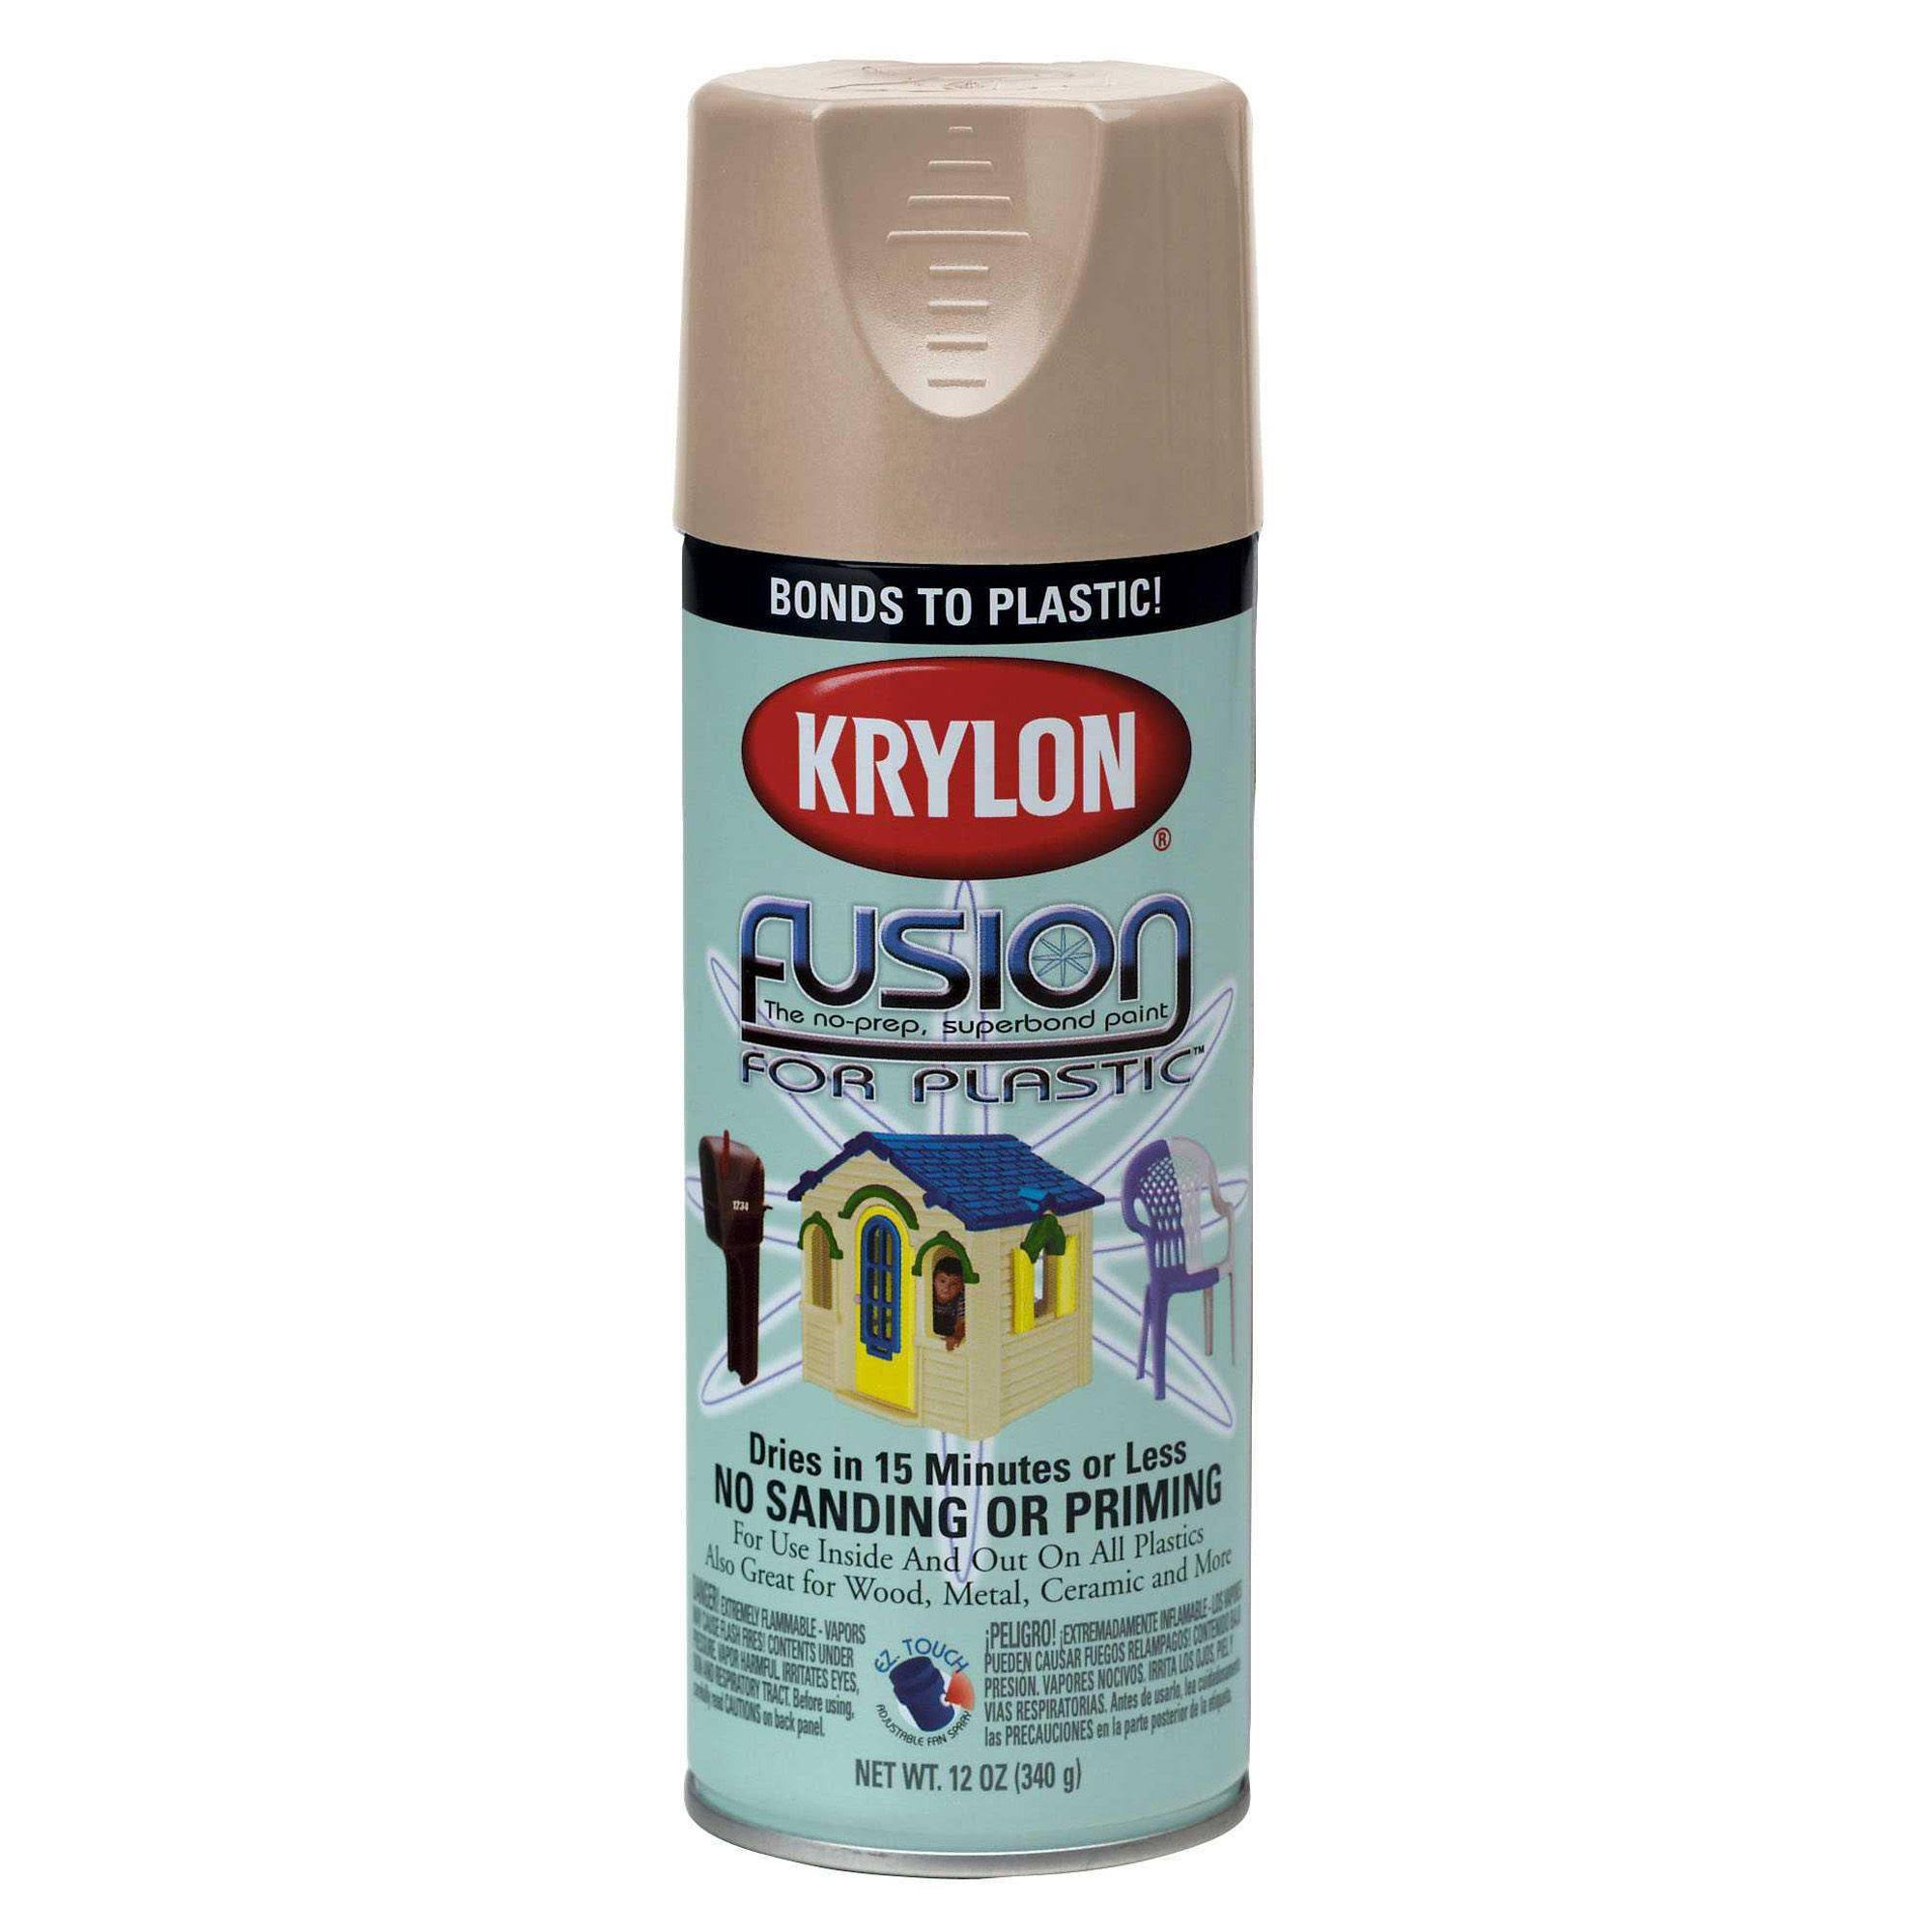 Krylon Fusion Spray Paint - River Rock